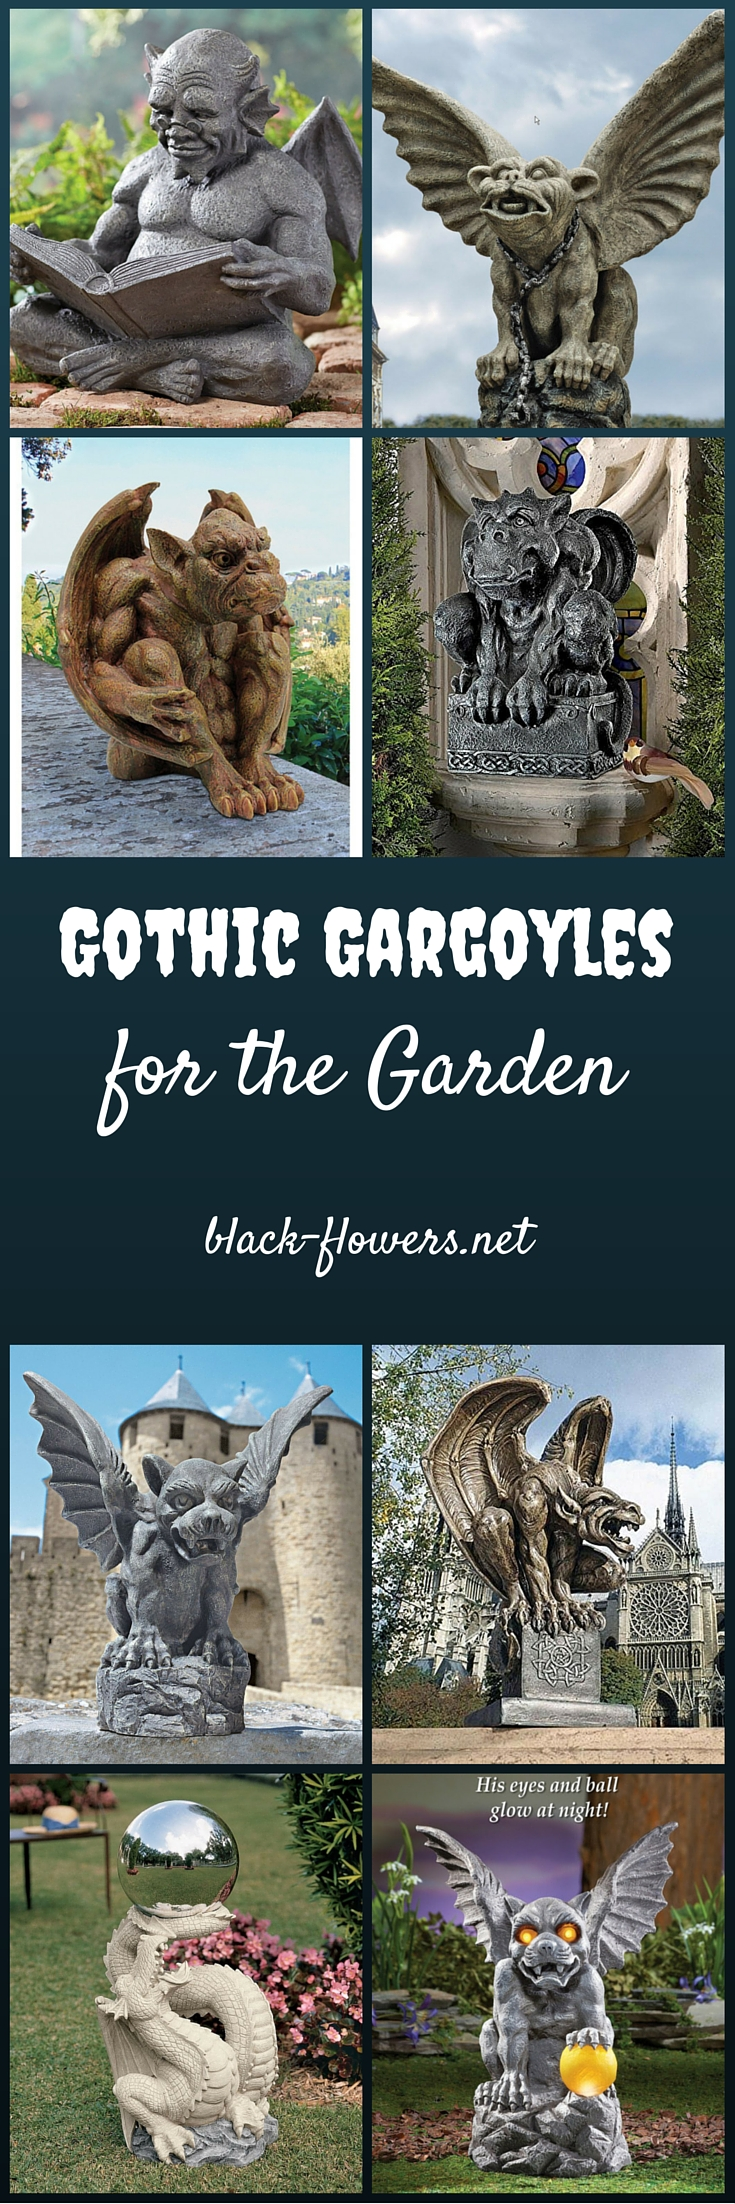 Gothic Gargoyles for the Garden